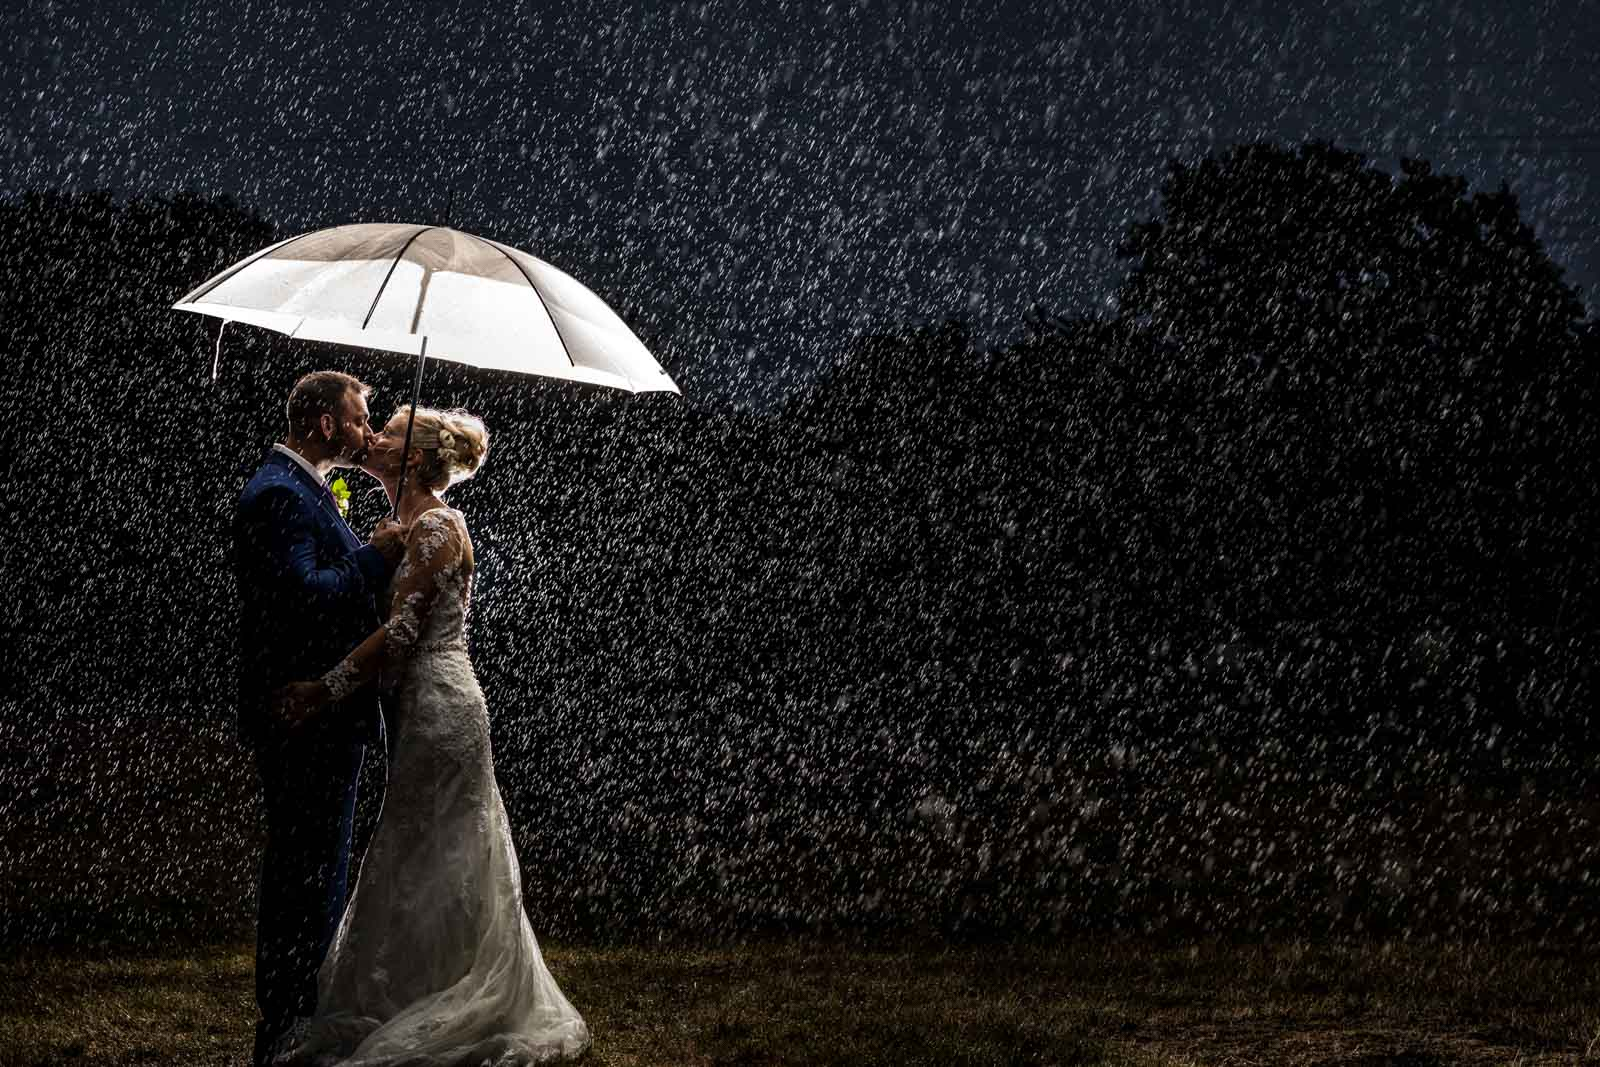 Couple kissing in the rain on their wedding day